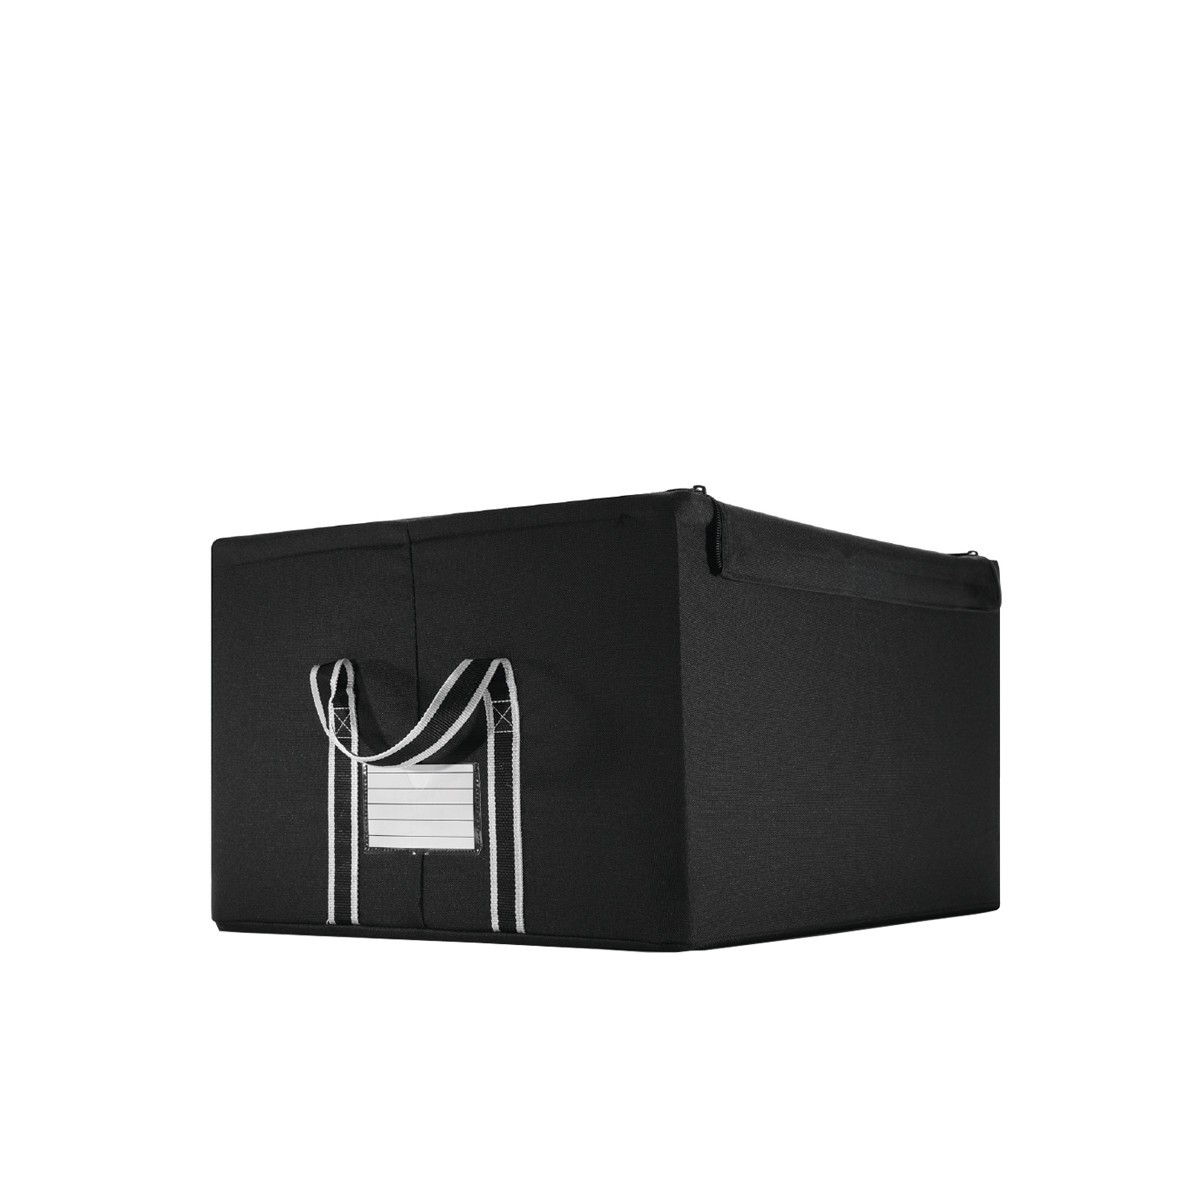 bo te de rangement pour placards en tissu noir. Black Bedroom Furniture Sets. Home Design Ideas